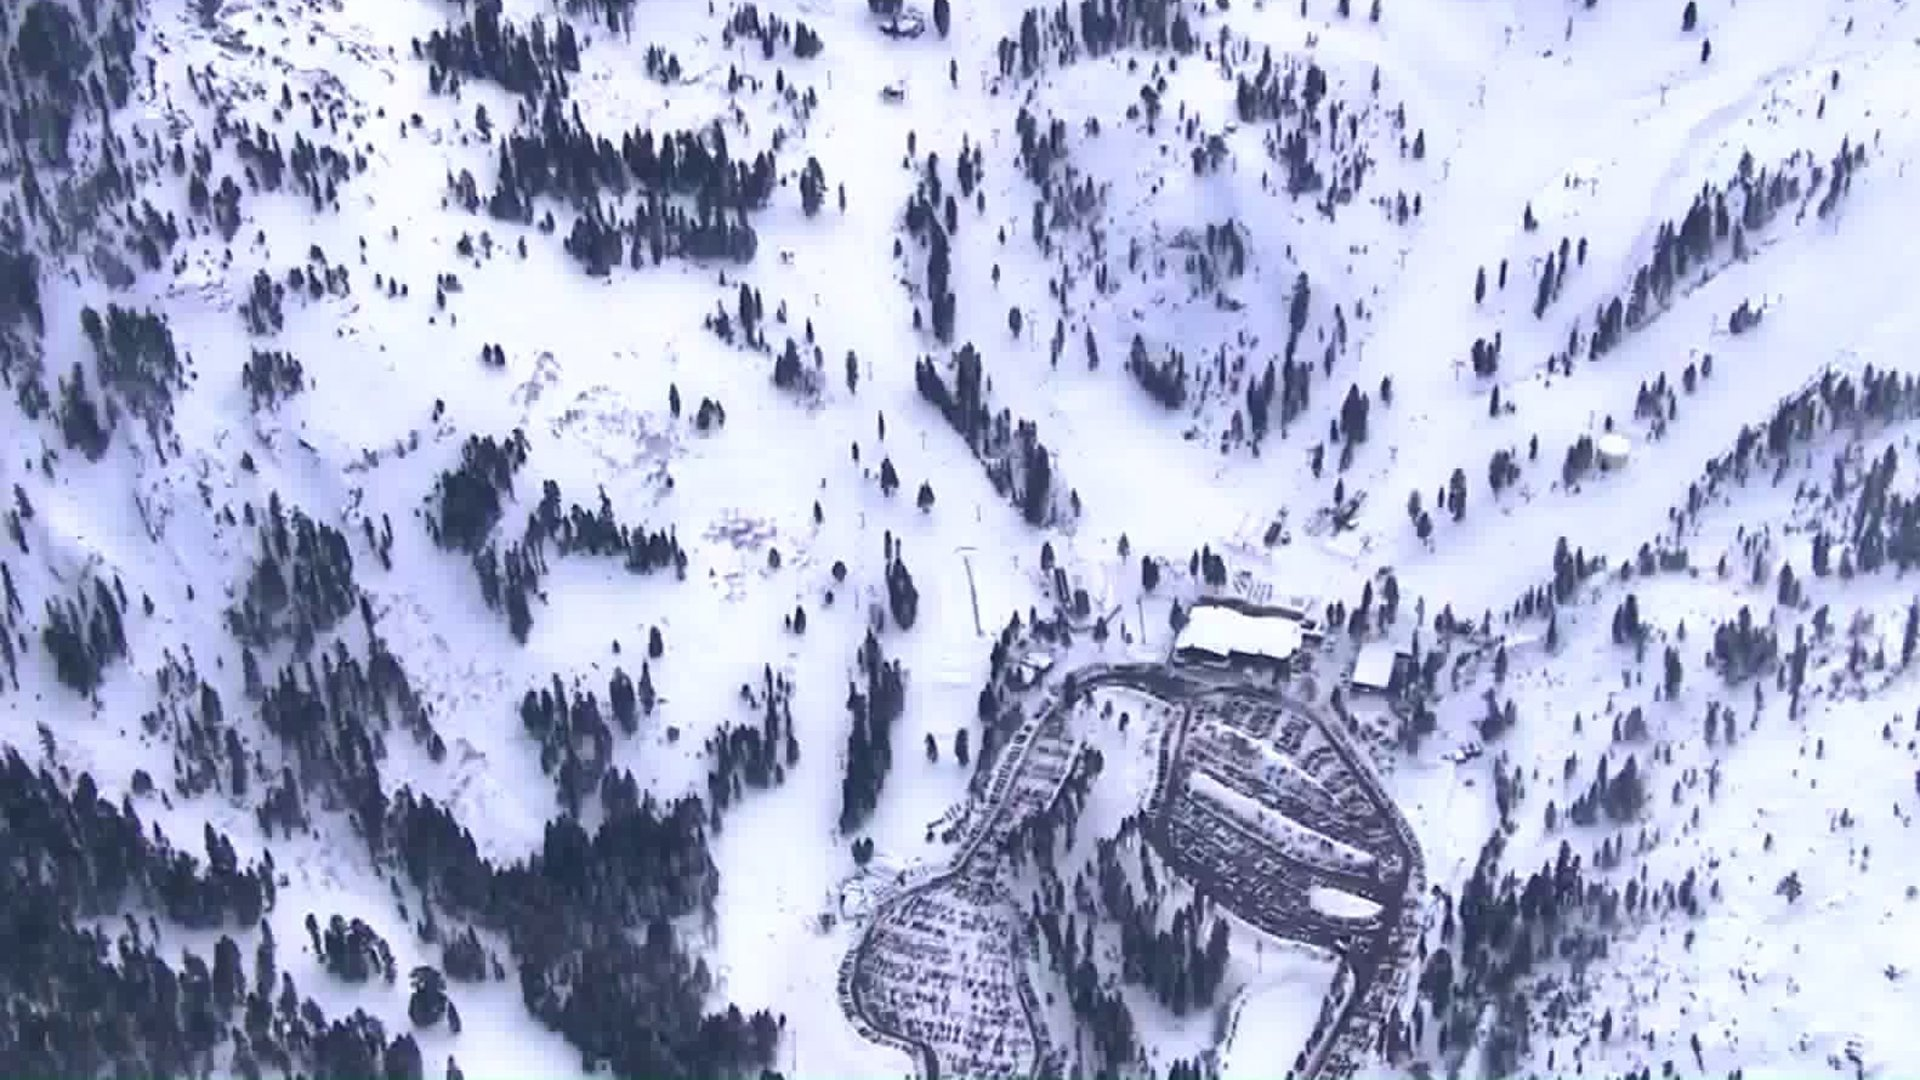 A view of Squaw Valley Alpine Meadowd resort on Jan. 17, 2020. (Credit: KCRA)